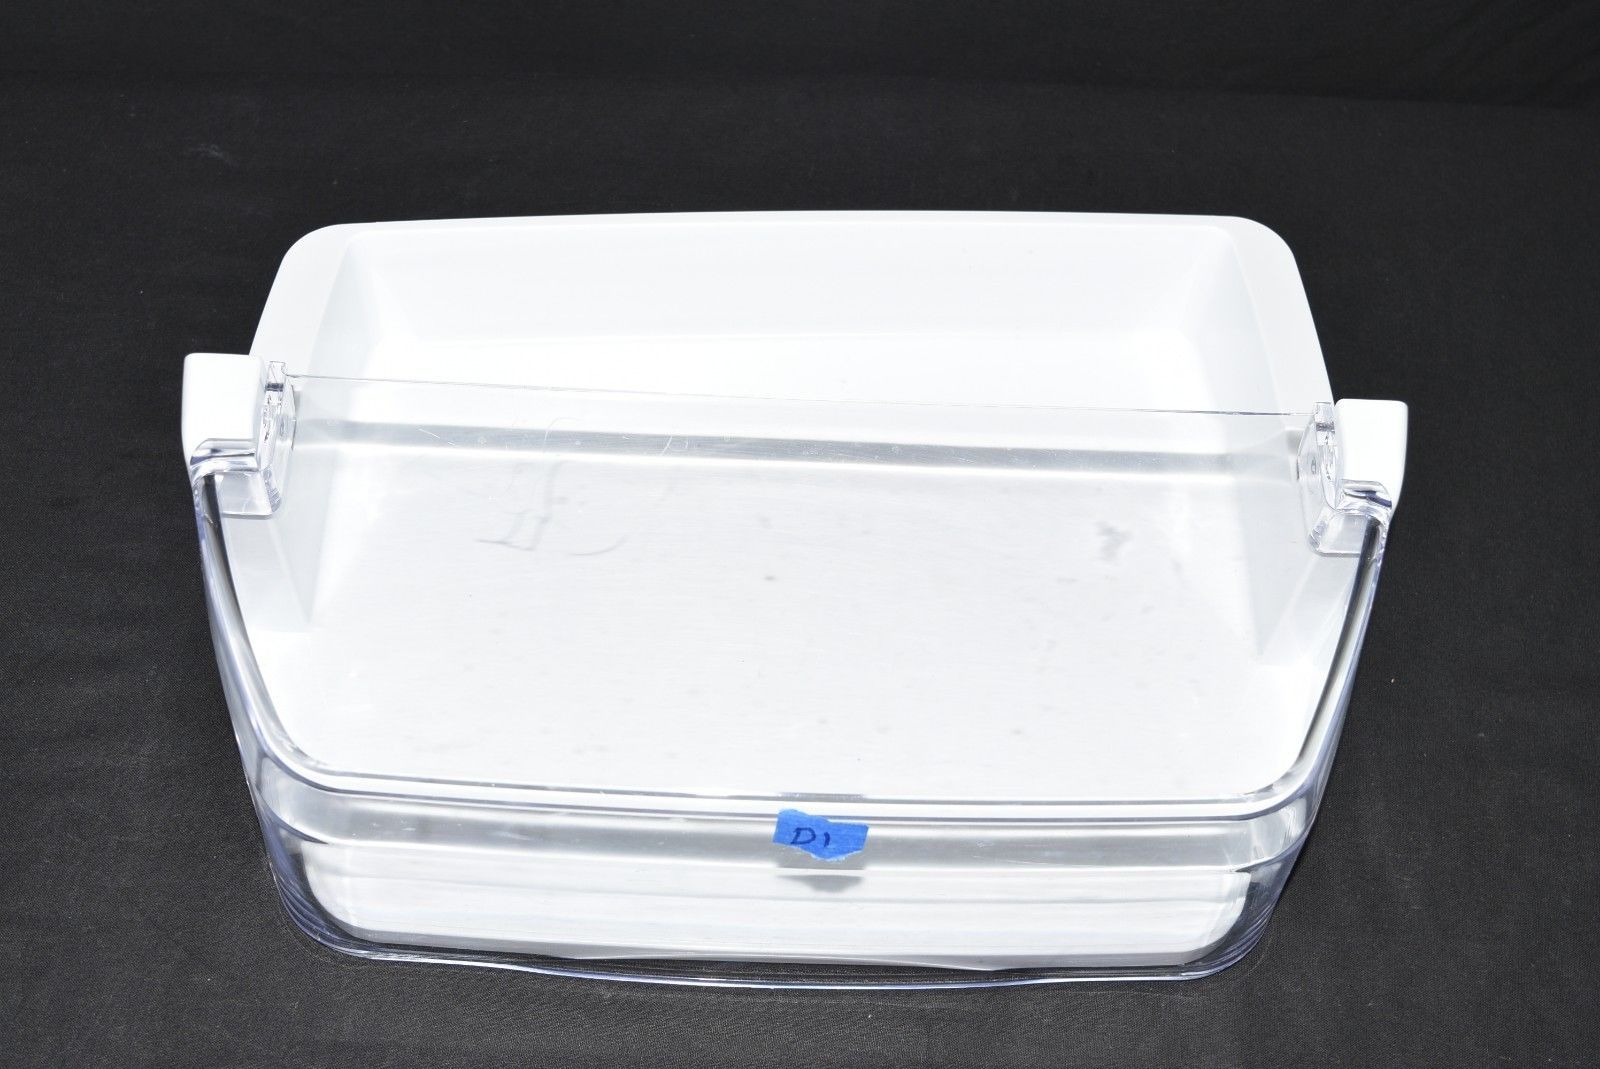 Primary image for Refrigerator Door Bin Shelf with Dairy bin cover part # AAP73351301